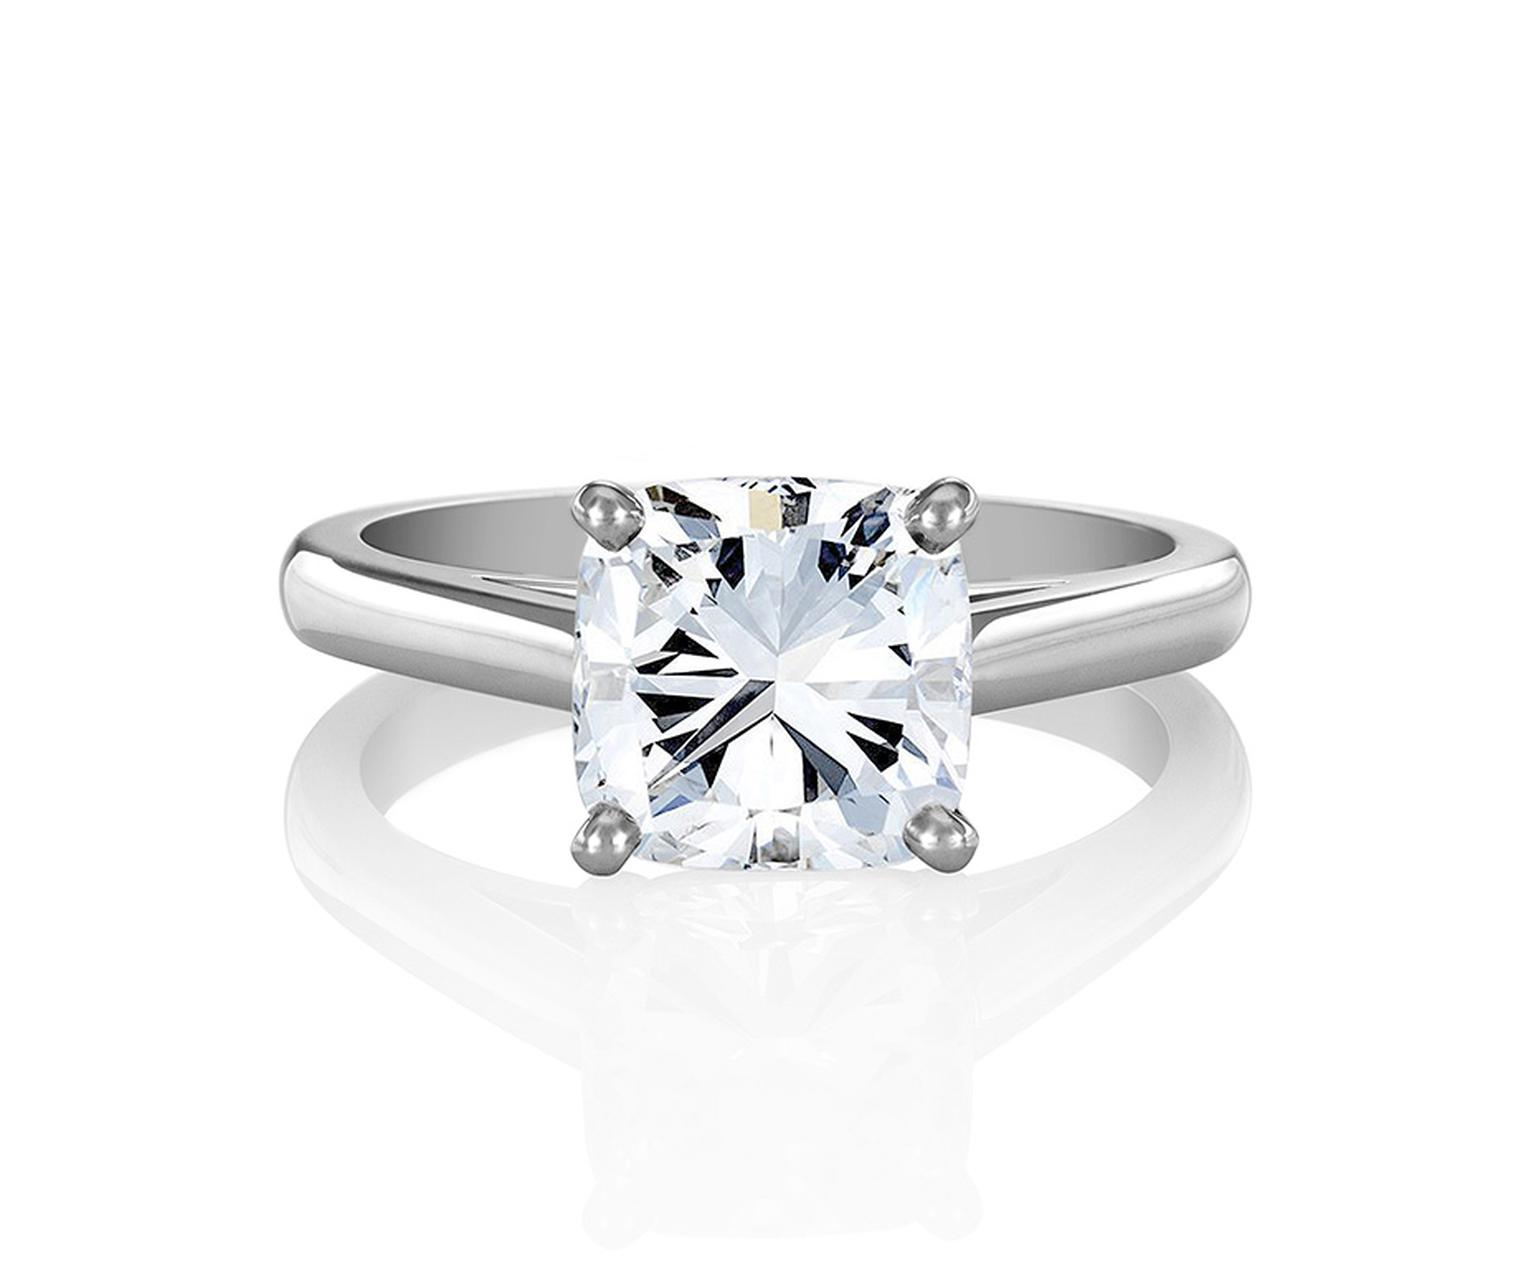 De Beers classic cushion-cut solitaire diamond engagement ring